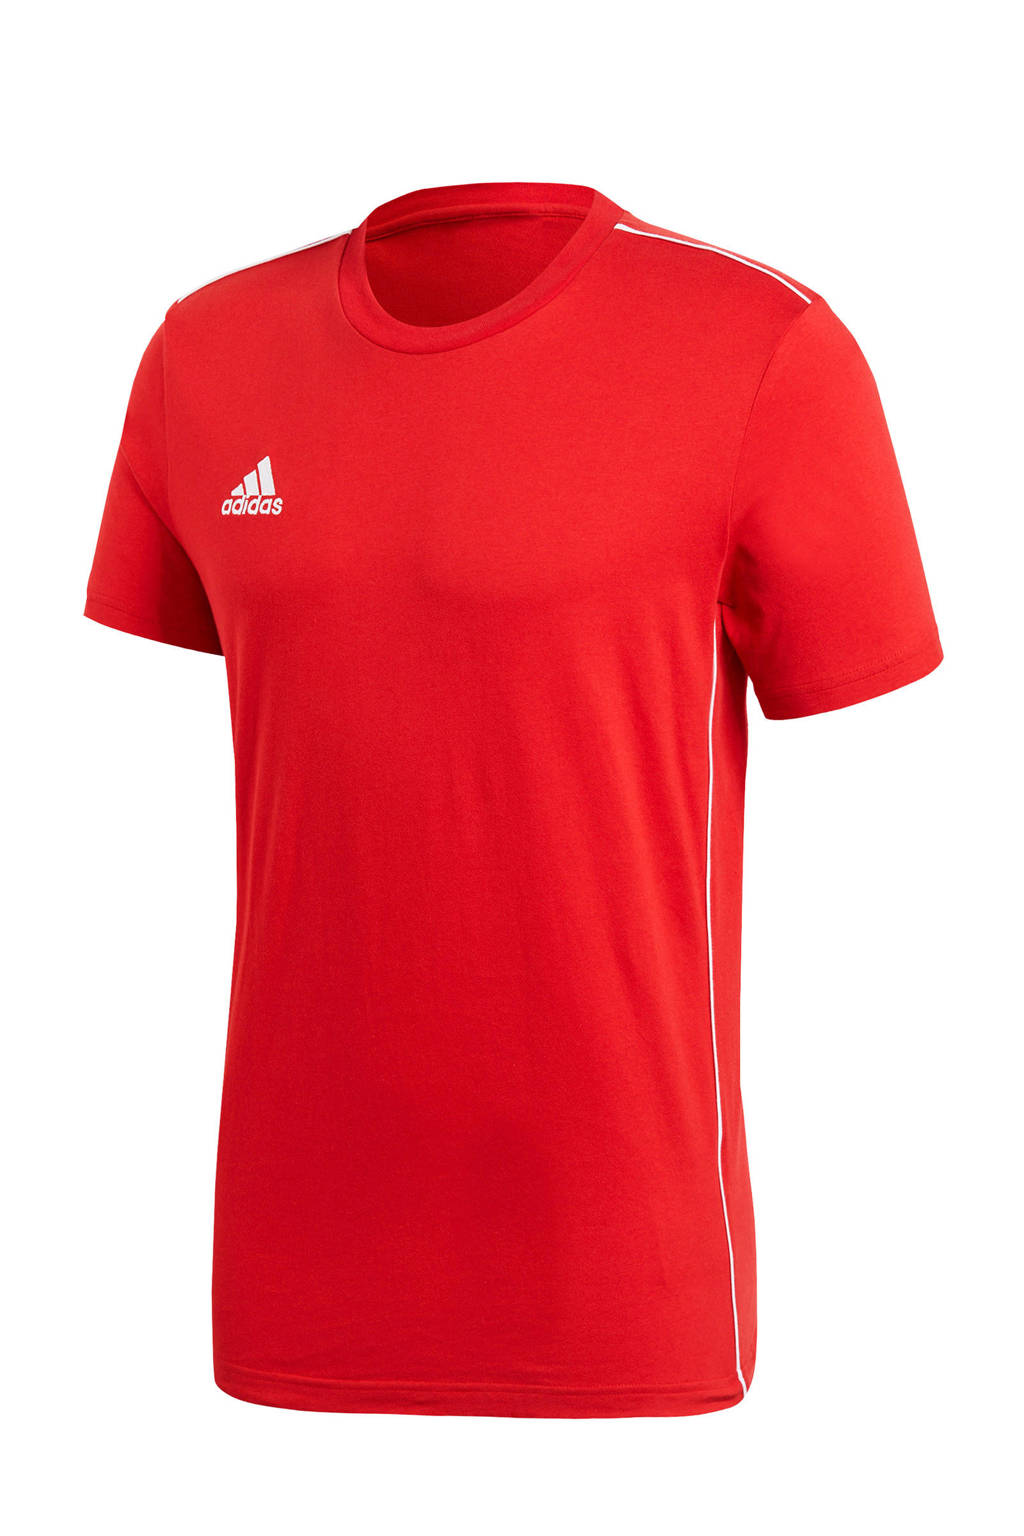 adidas performance   Core 18 sport T-shirt rood, Rood/wit